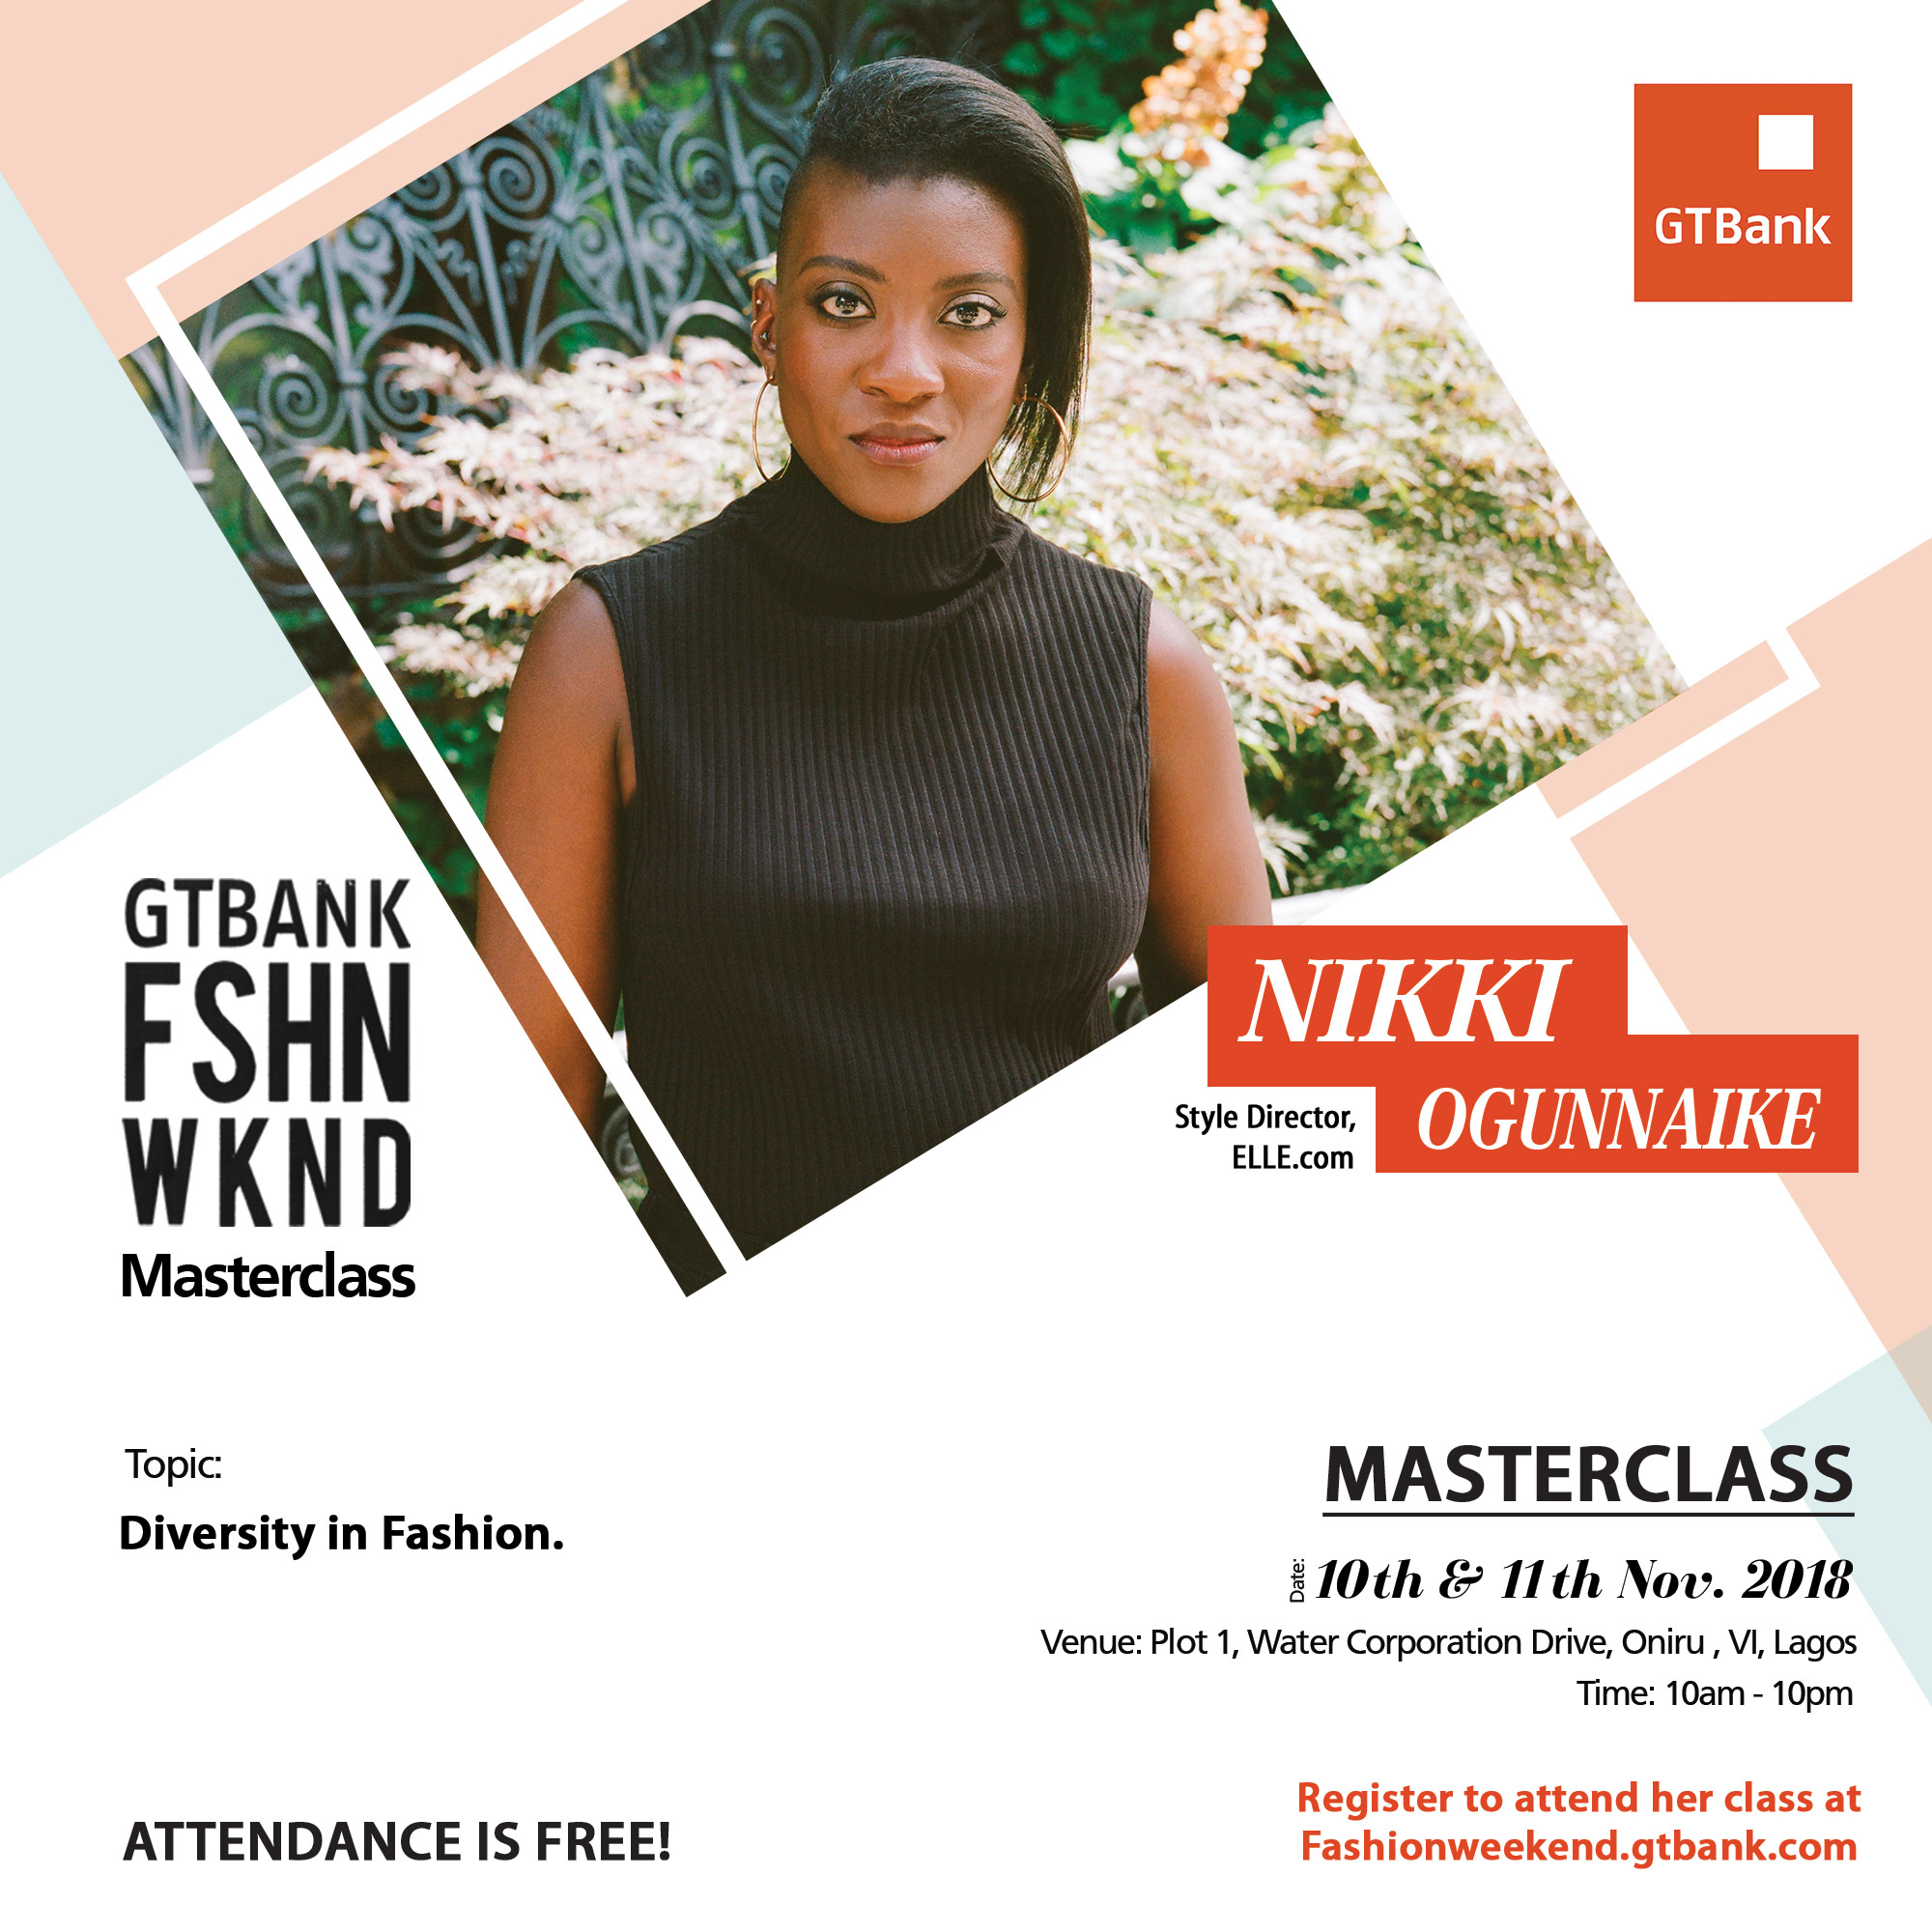 BRITISH VOGUE EDITOR-AT-LARGE, JULIA SARR-JAMOIS TO HOLD MASTERCLASS AT 2018 GTBANK FASHION WEEKEND